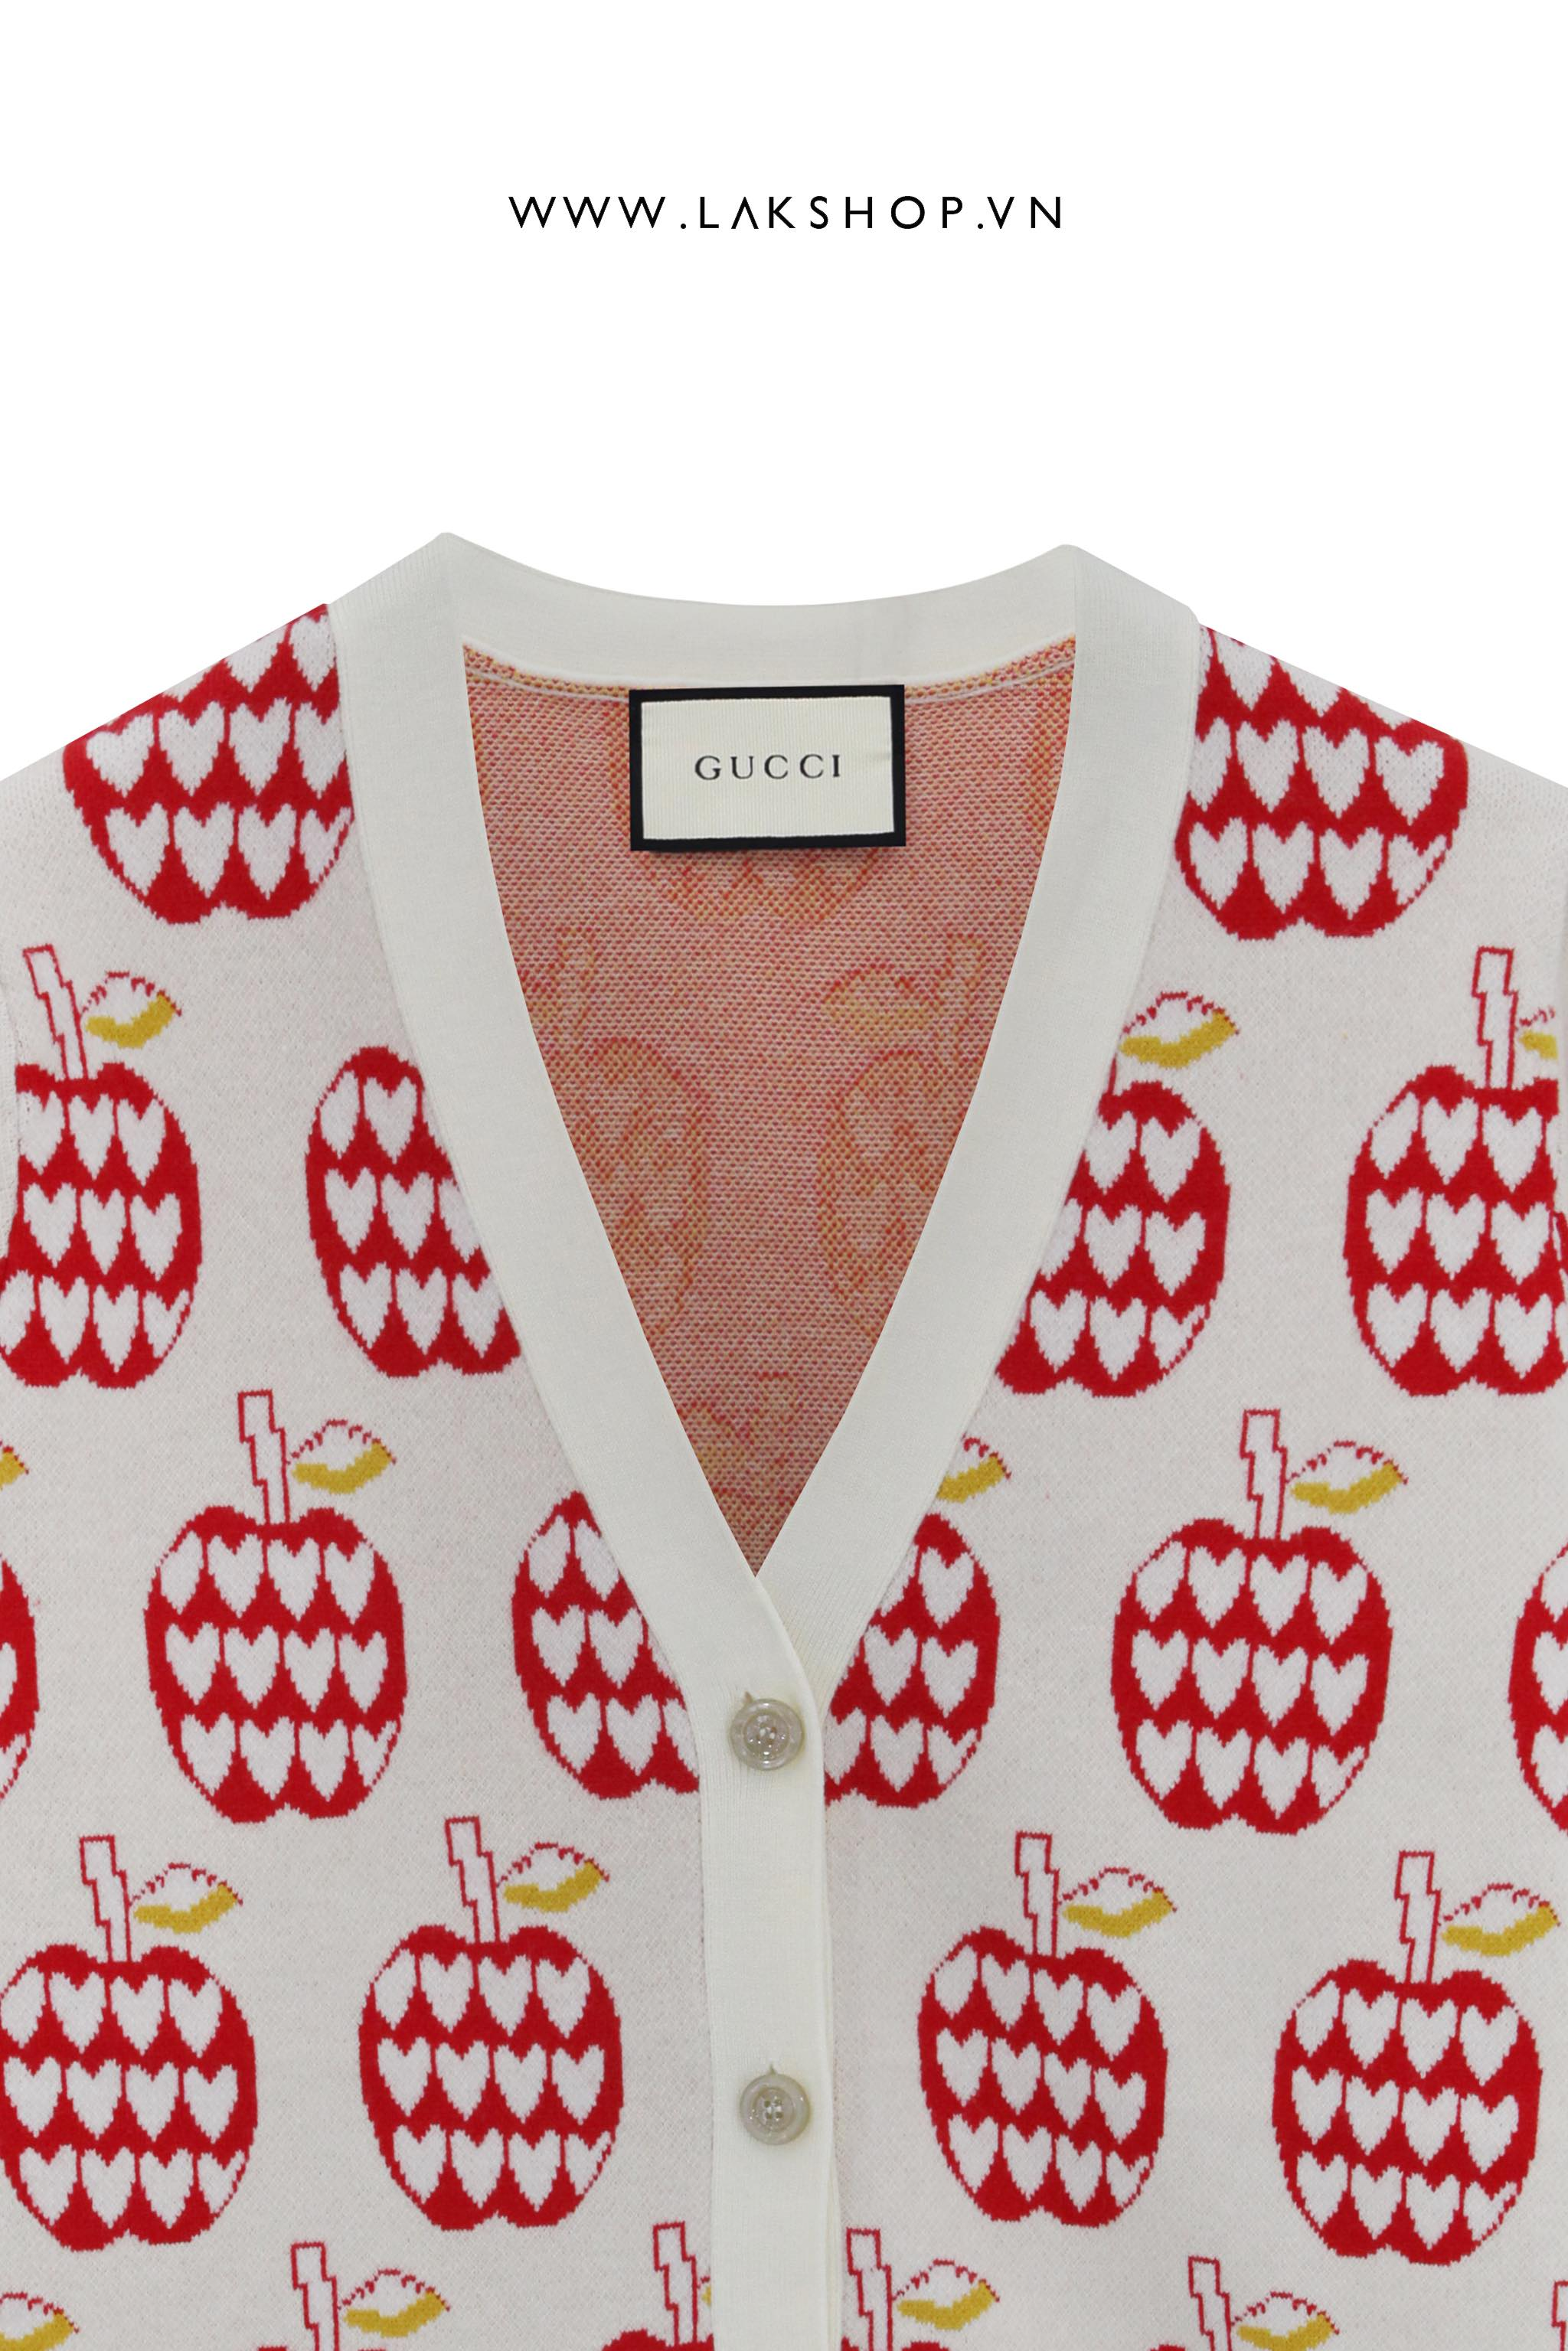 Gucci Les Pommes Sweater Cardigan in Begie and Red